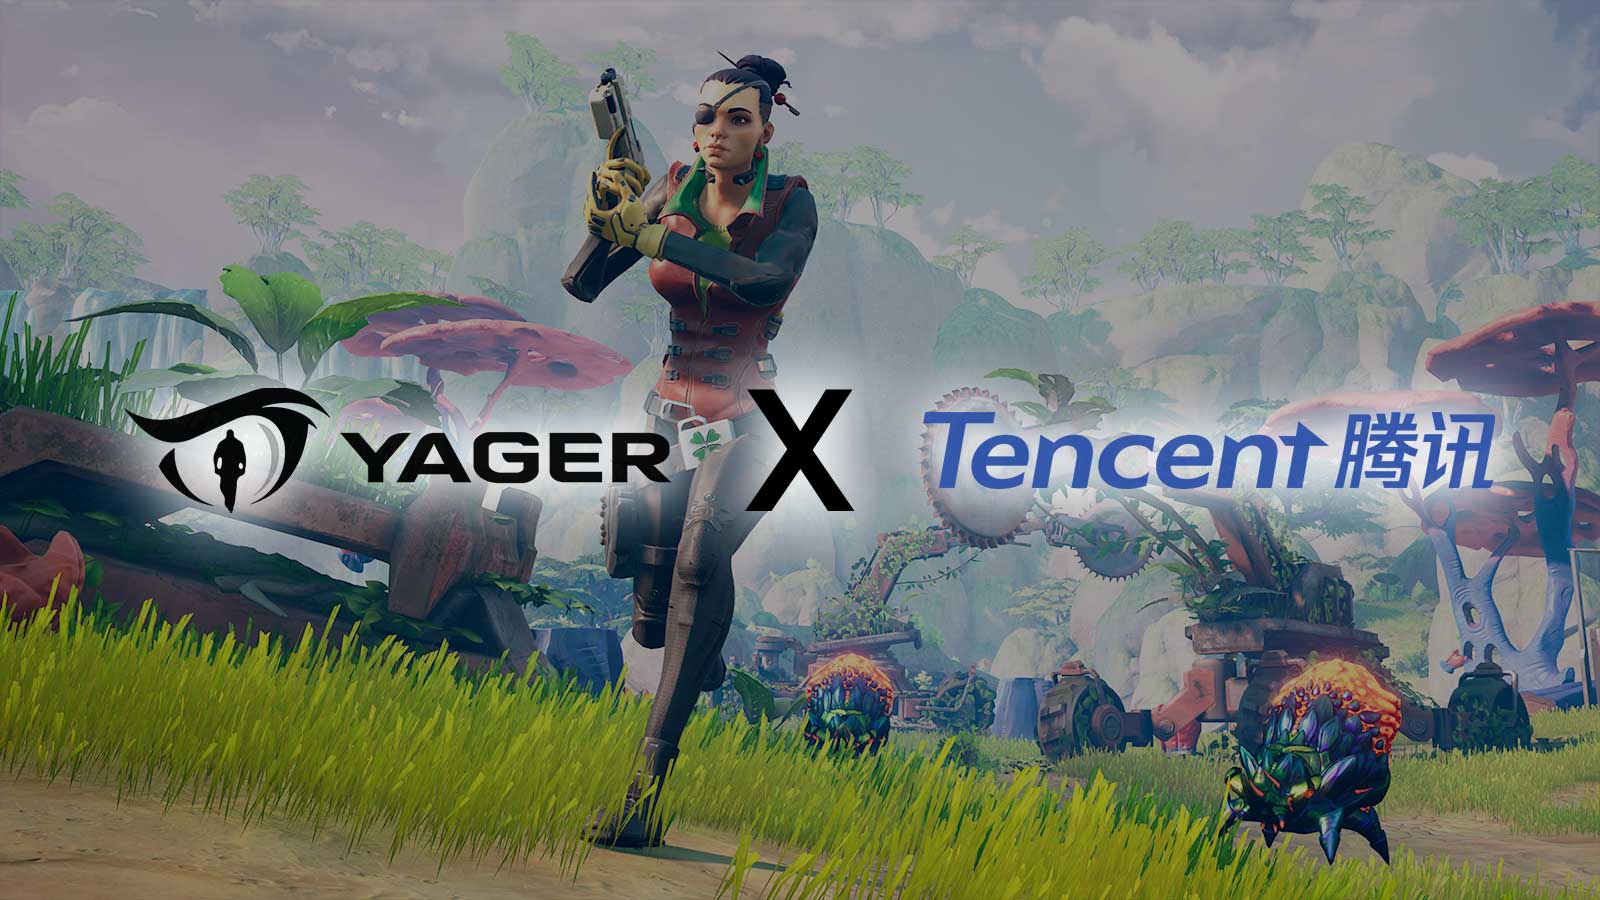 yager x tencent